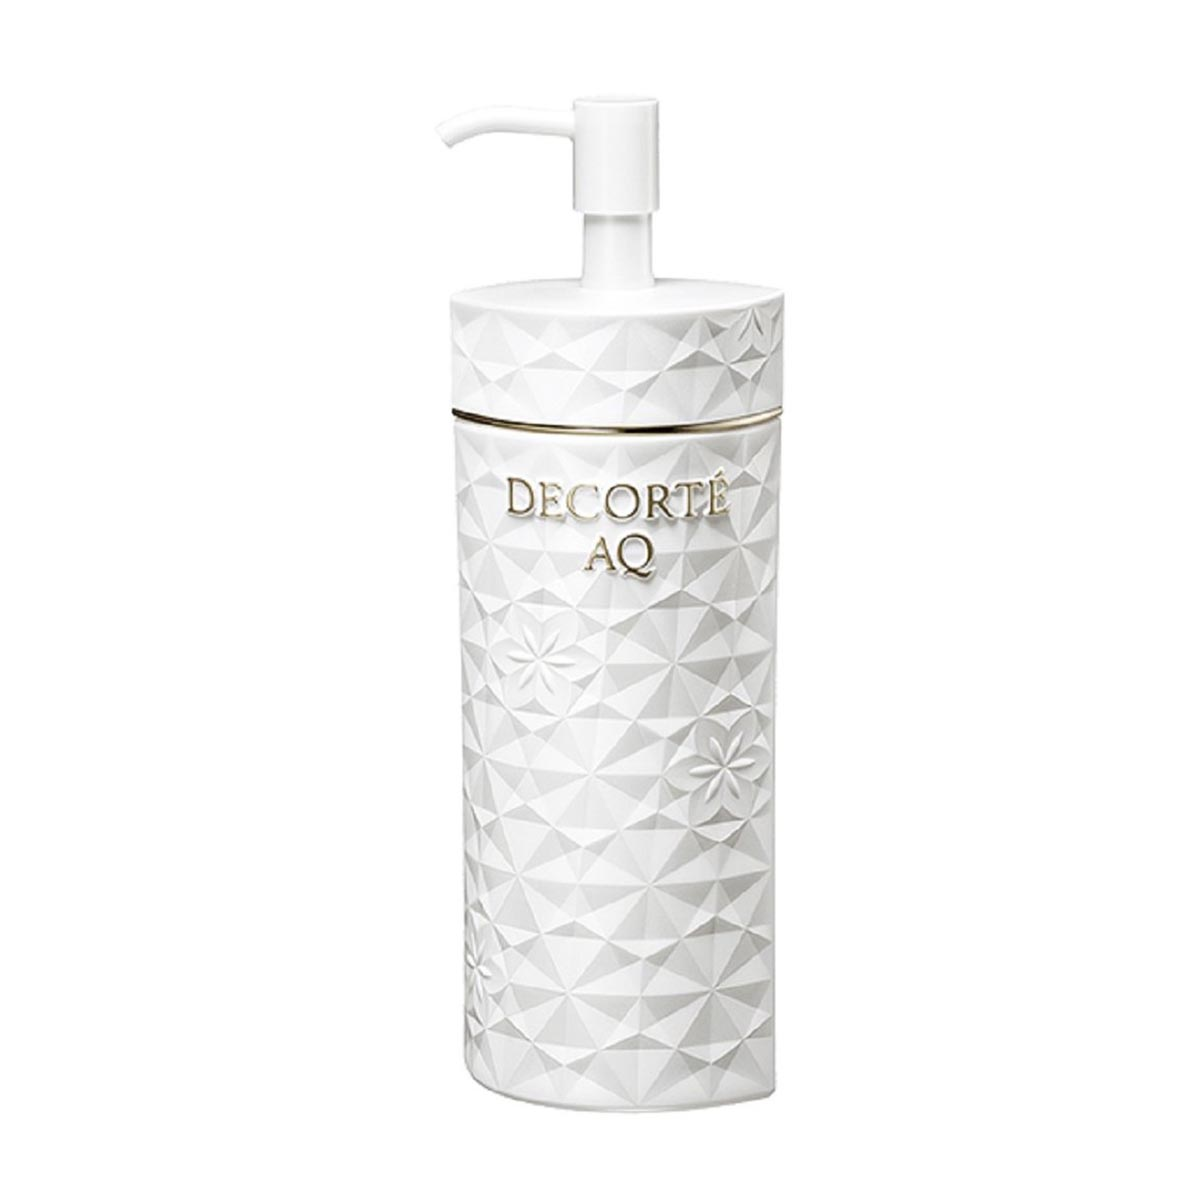 Cosme decorte aq cleansing oil 200ml